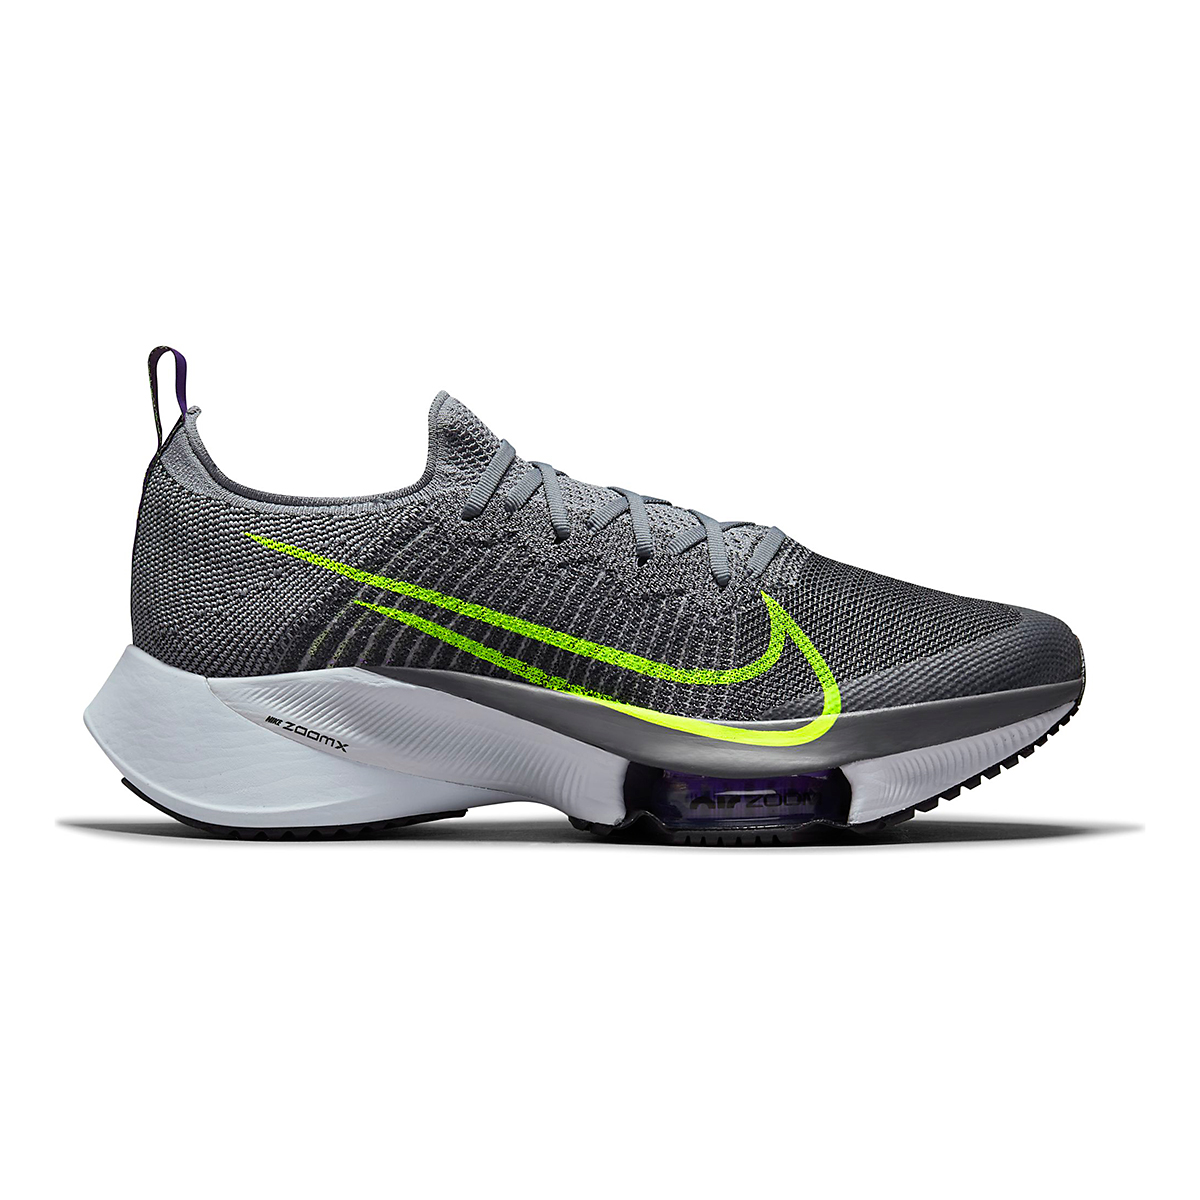 Men's Nike Air Zoom Tempo Next% Running Shoe - Color: Perticle Grey/Volt Grey/Wild Berry - Size: 10 - Width: Regular, Perticle Grey/Volt Grey/Wild Berry, large, image 1